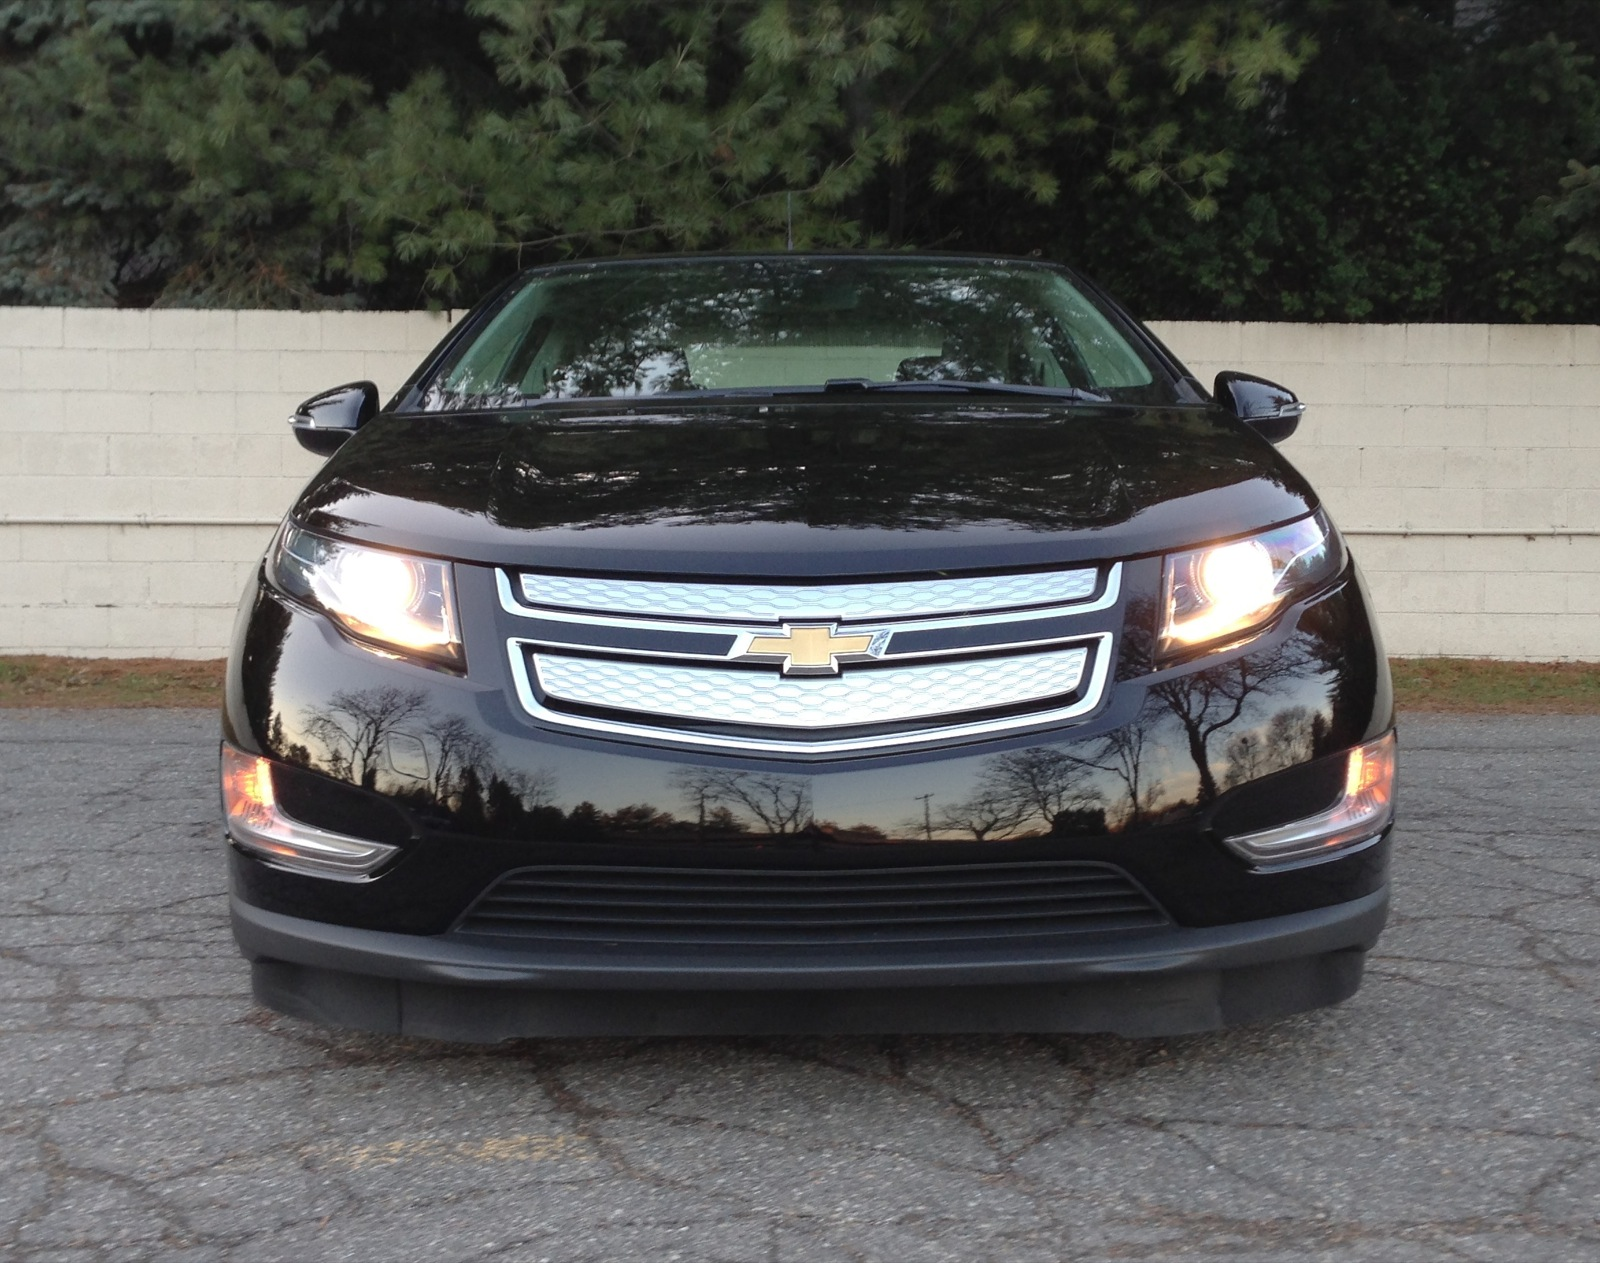 Should I Buy A Used Chevy Volt Electric Car . New Colors For 2013. Home Design Ideas